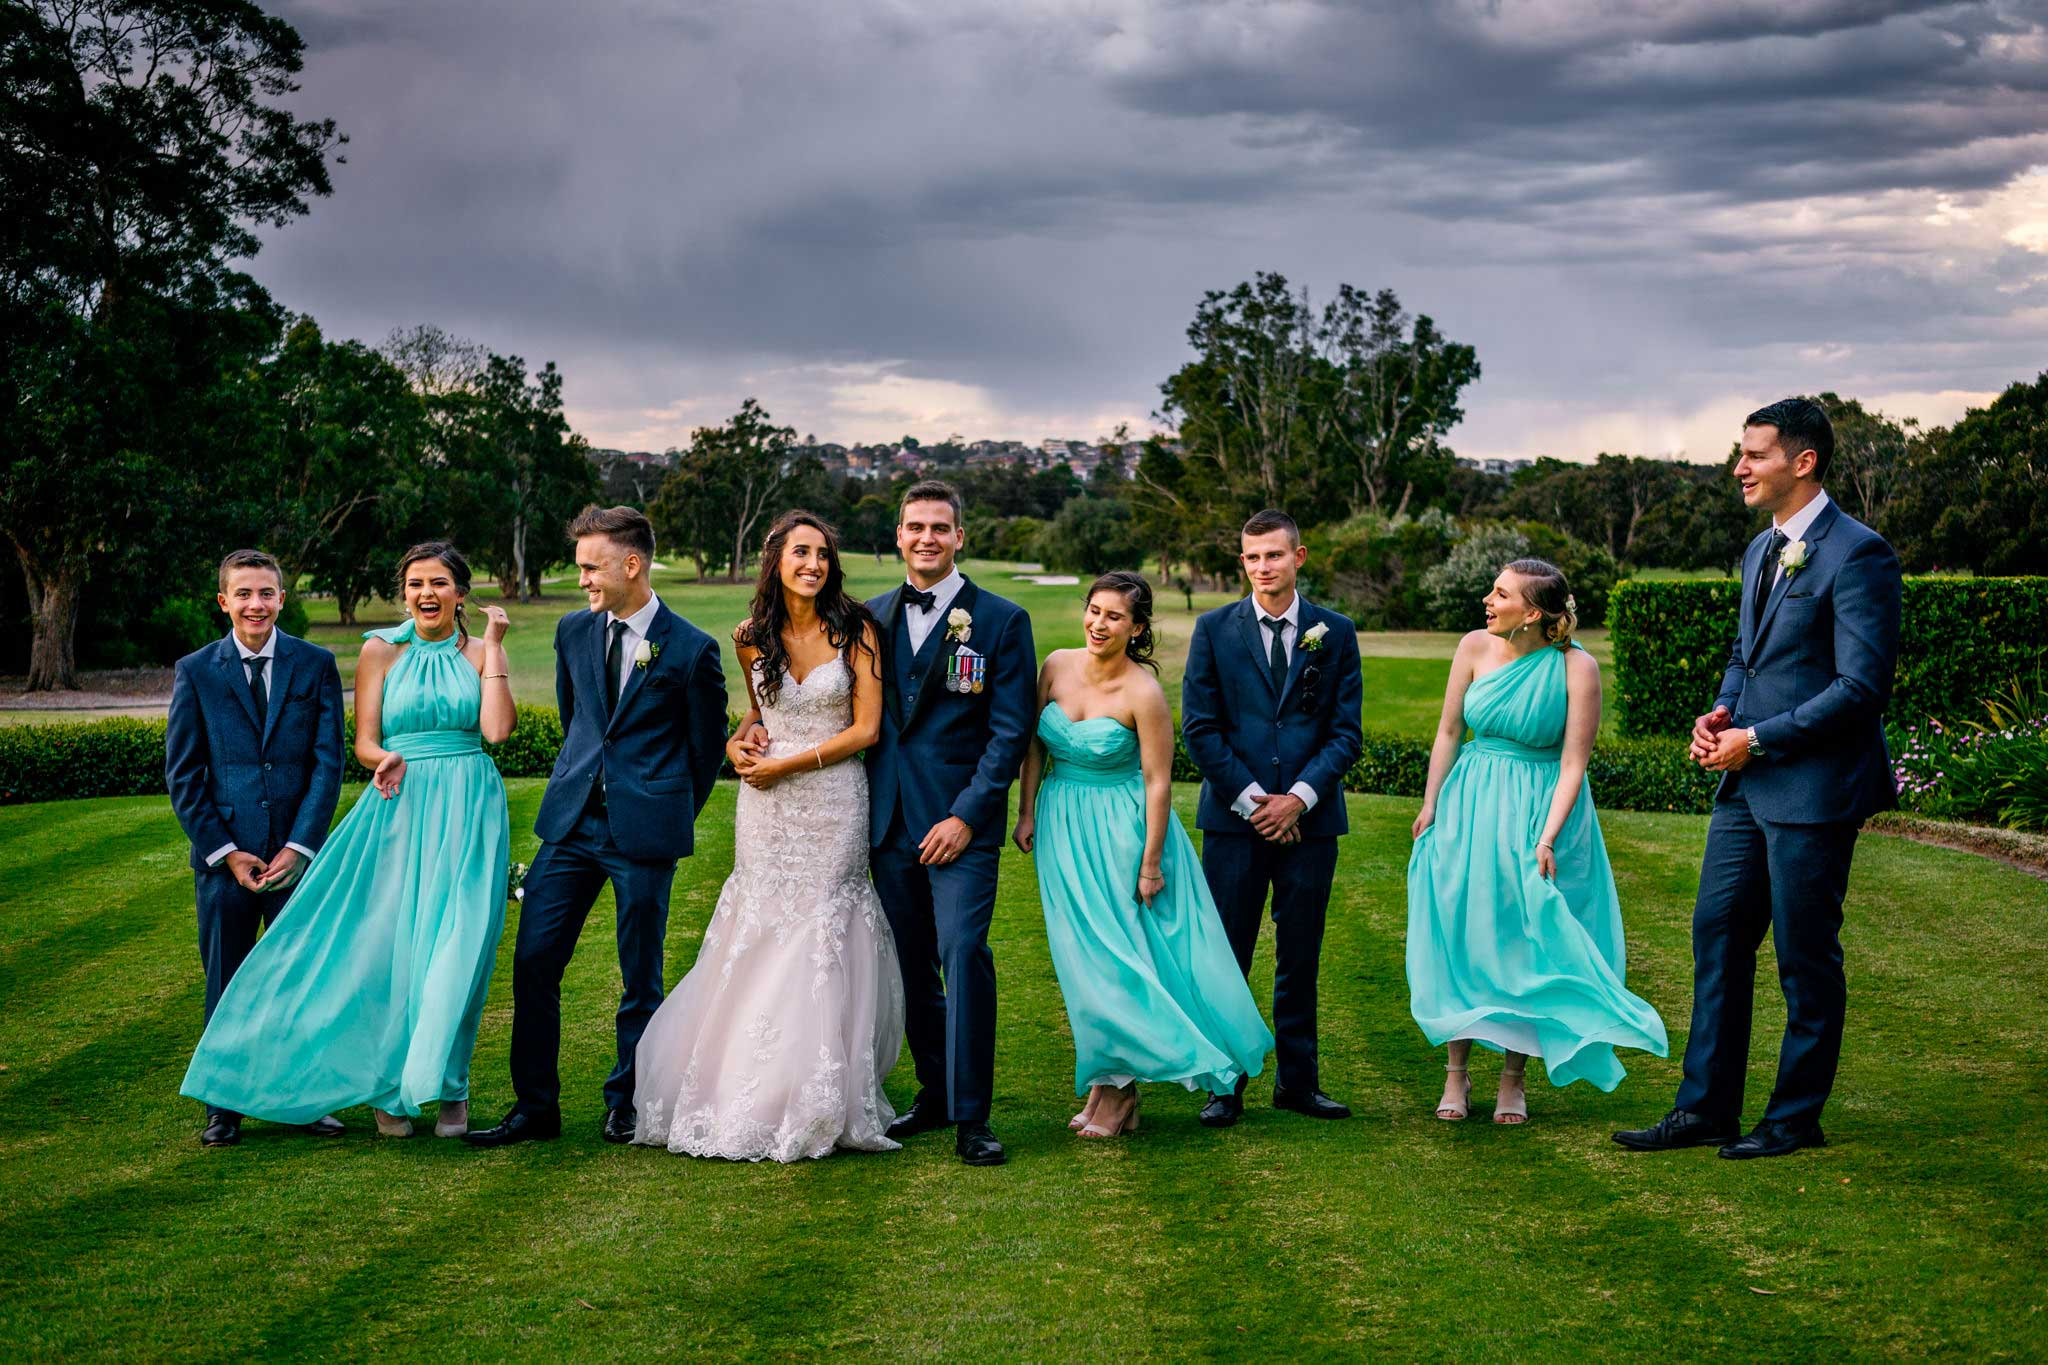 Bridal party laughing and playing on golf greens at Manly Golf Club